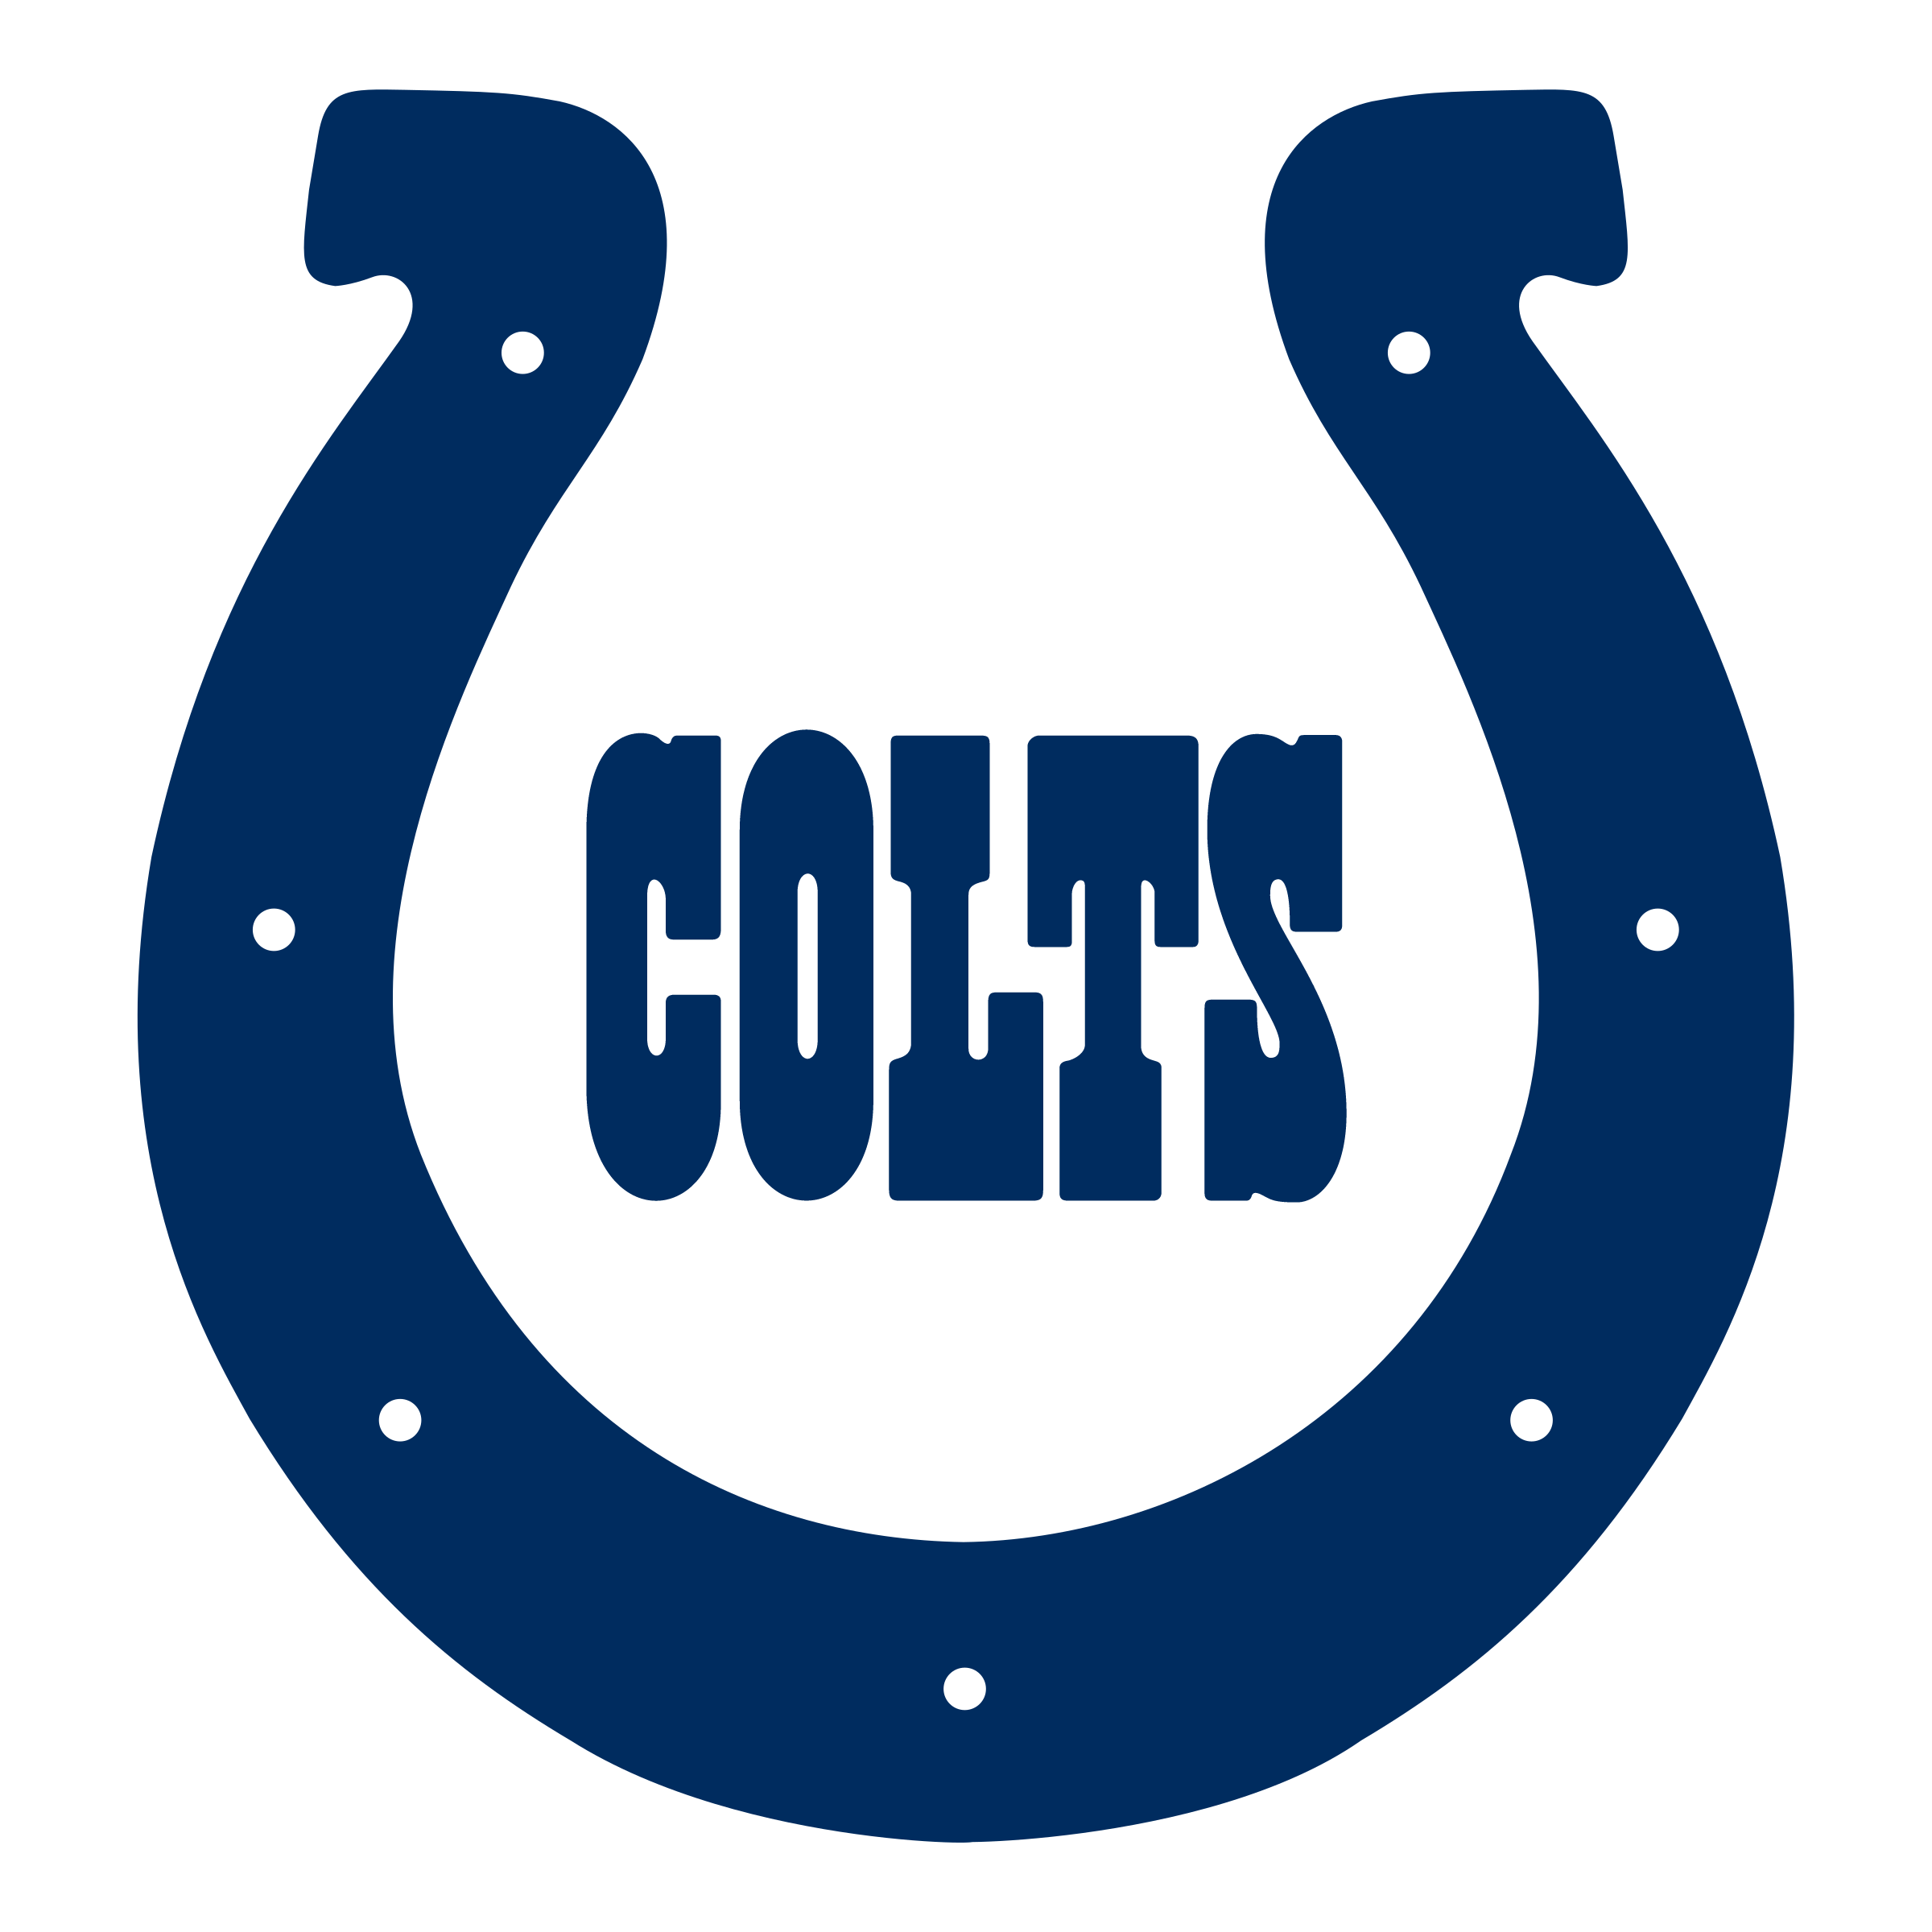 Indianapolis Colts Logo Clipart.